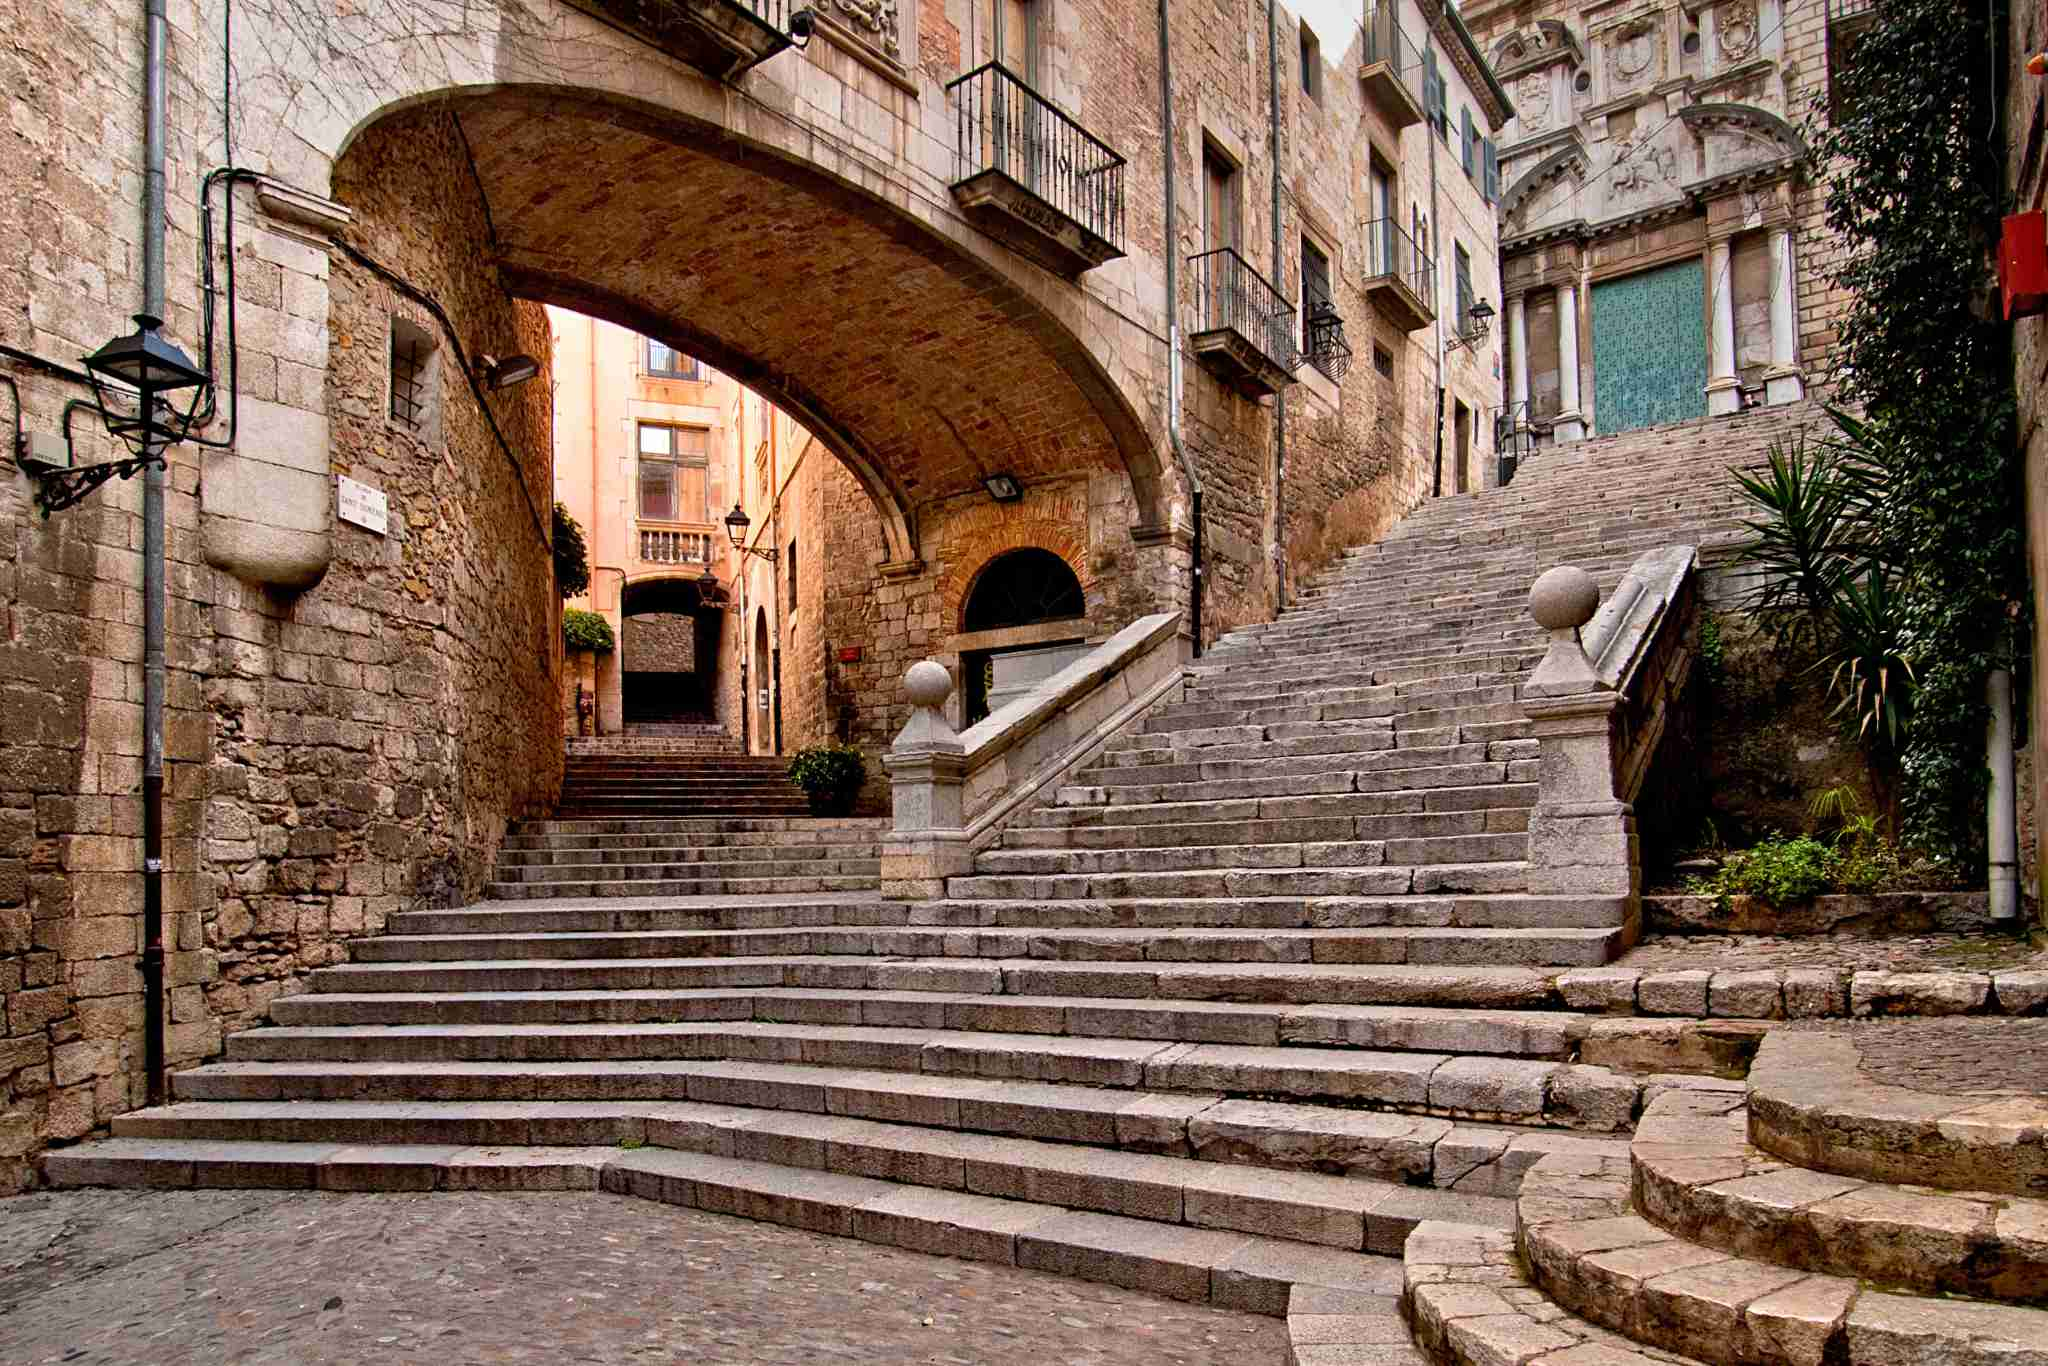 The medieval streets of Girona, which doubled as parts of King